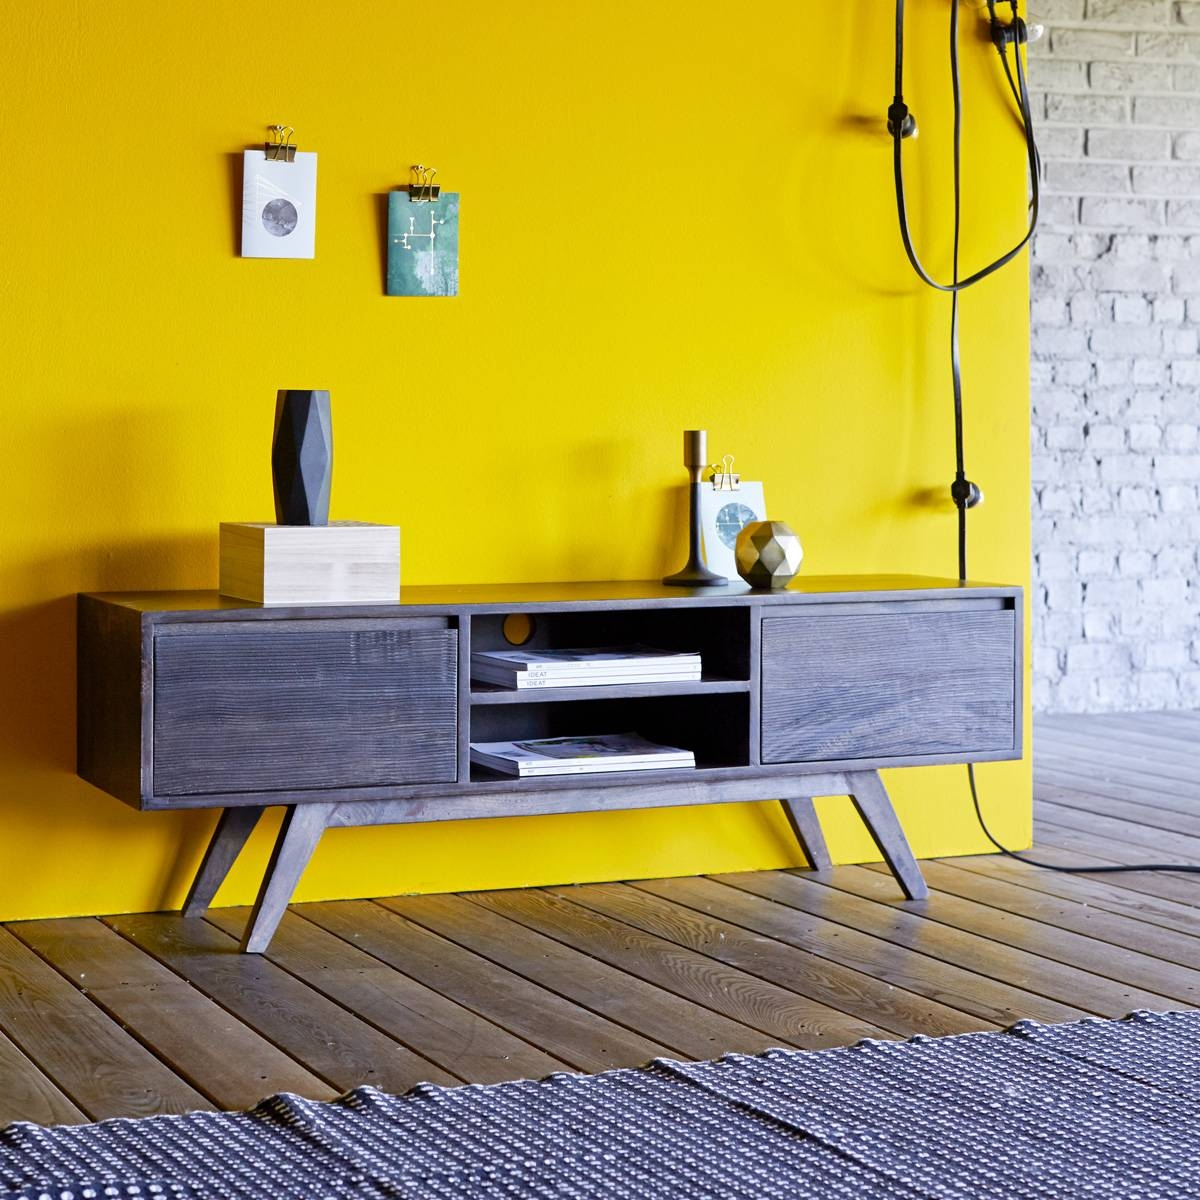 Mango Tv Stand - Moka Tv Stands Sale At Tikamoon pertaining to Yellow Tv Stands (Image 5 of 15)